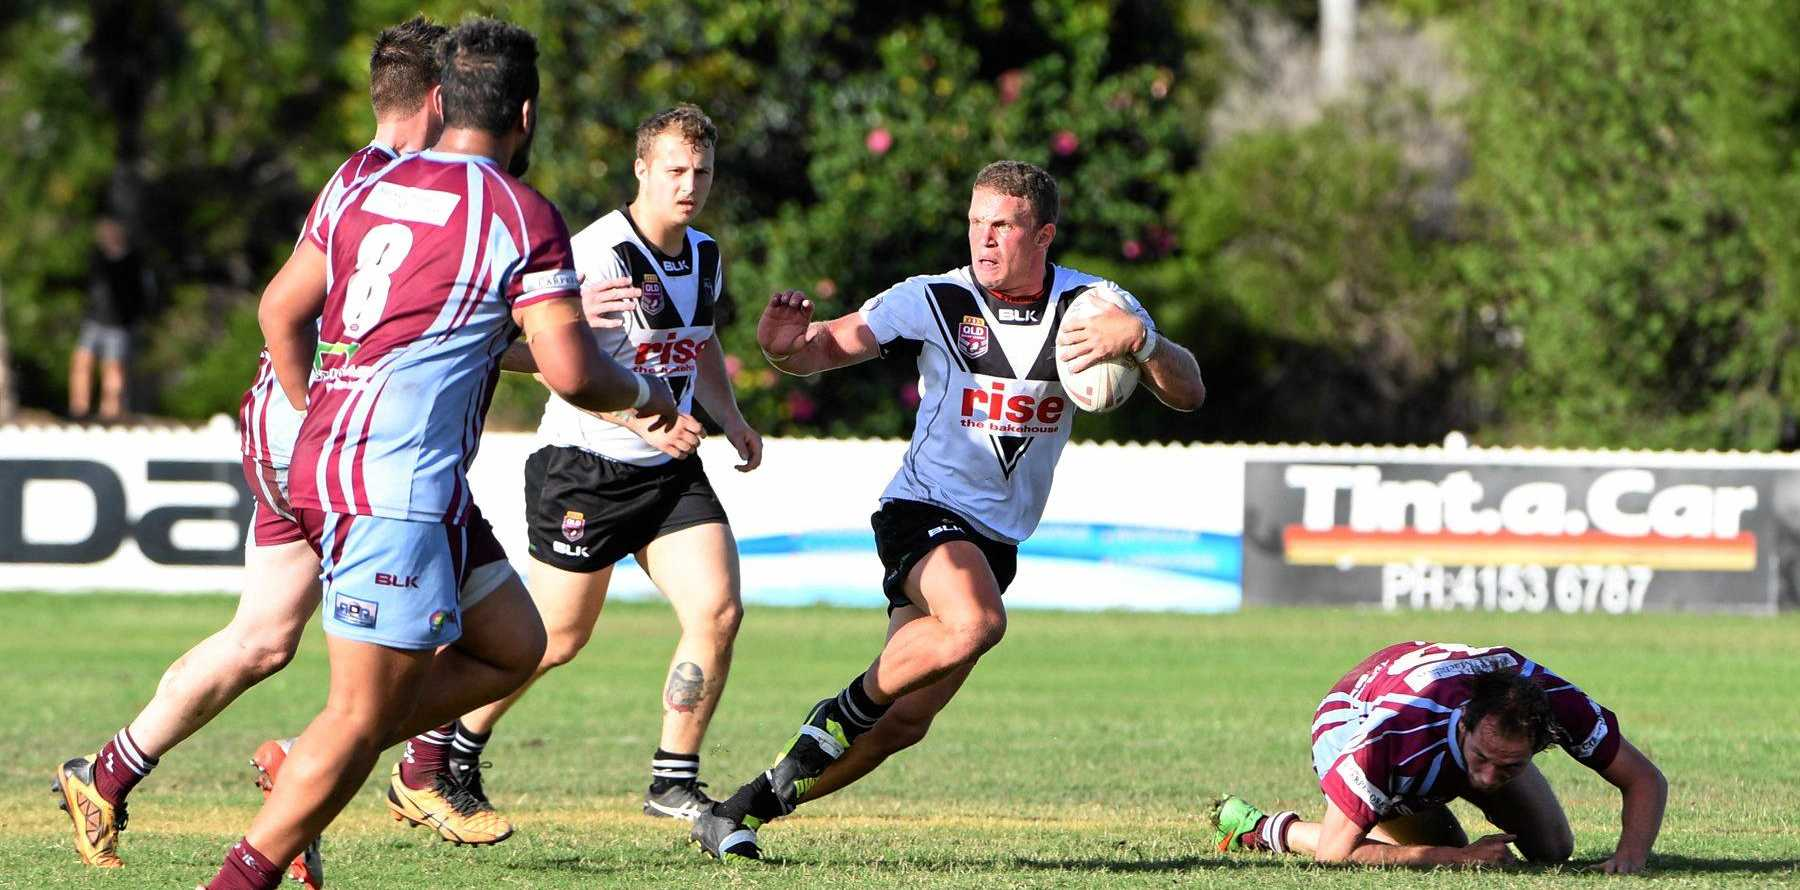 FENDING OFF: Jamie Lowien races up for Eastern Suburbs in the A Grade game at Salter Oval in Bundaberg.